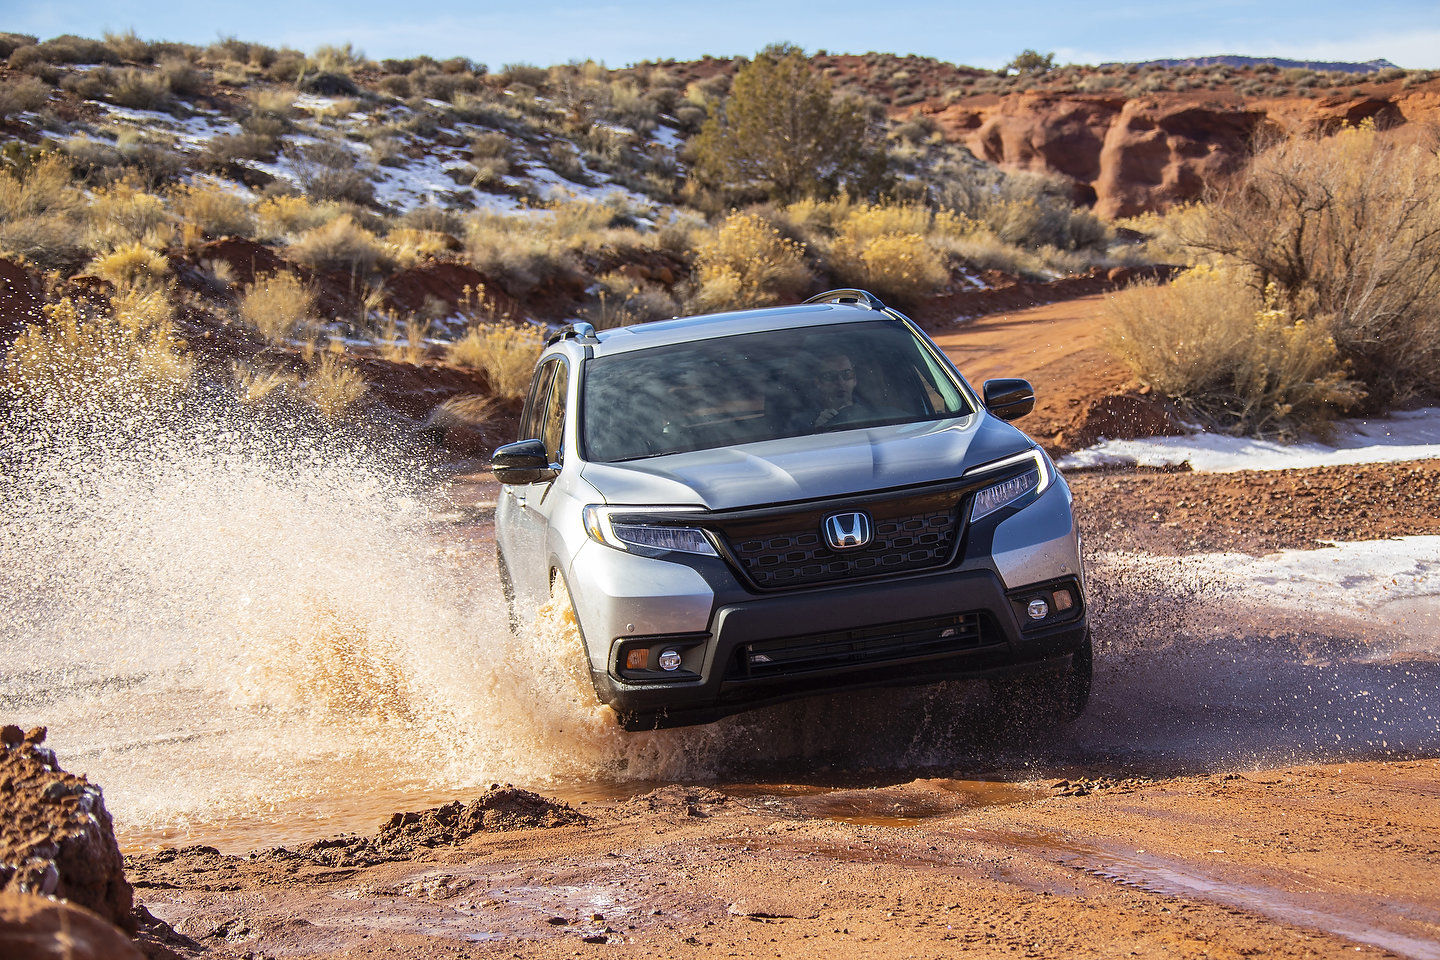 The recent 2019 Honda Passport reviews are telling